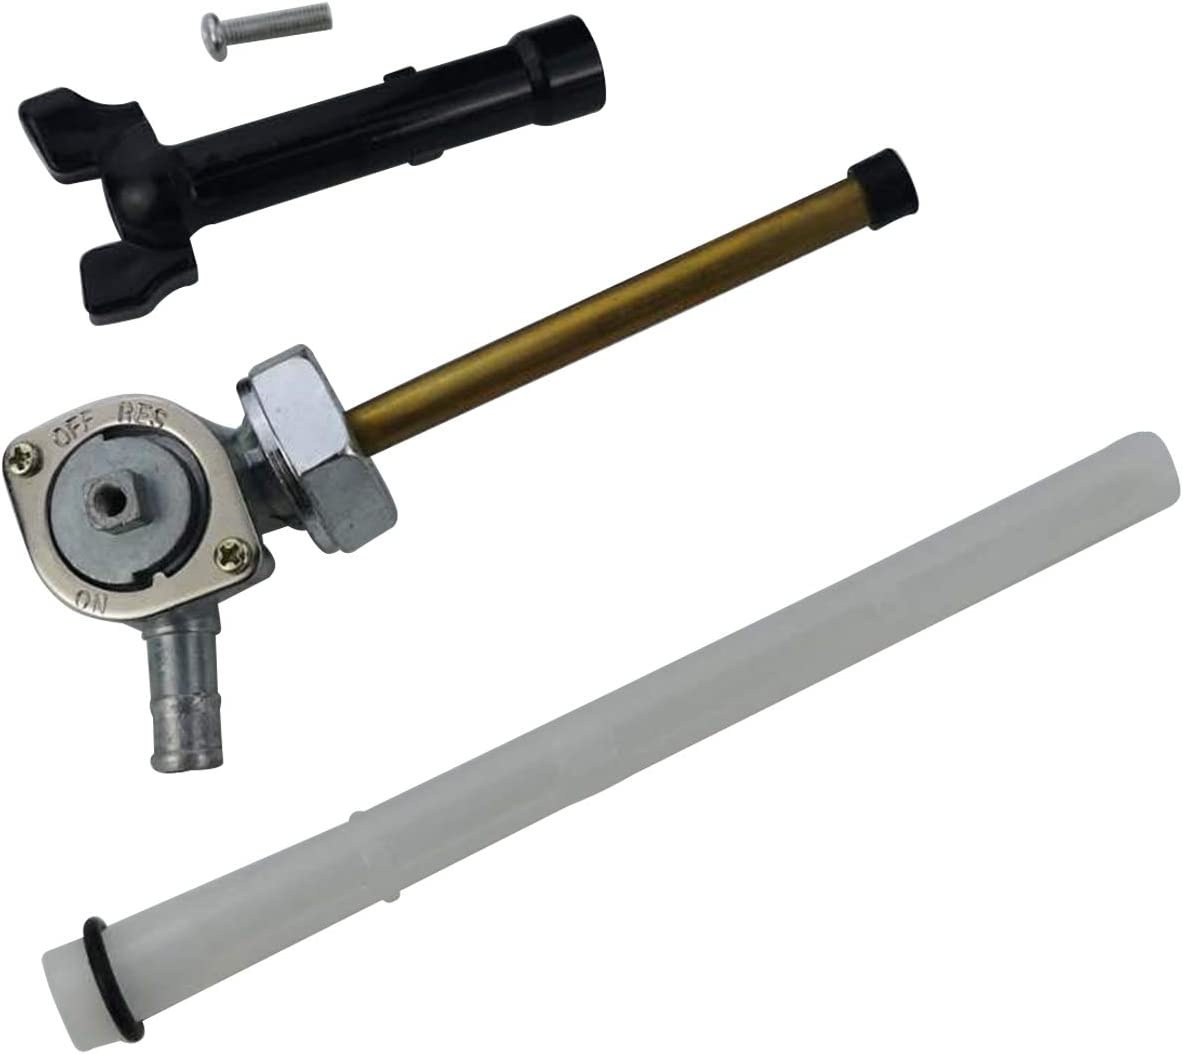 M MATI Fuel Cock Petcock Assy /& Lever for Honda Motorcycle VT600 1999-2007 SHADOW VLX DELUXE 16950-MZ8-L23